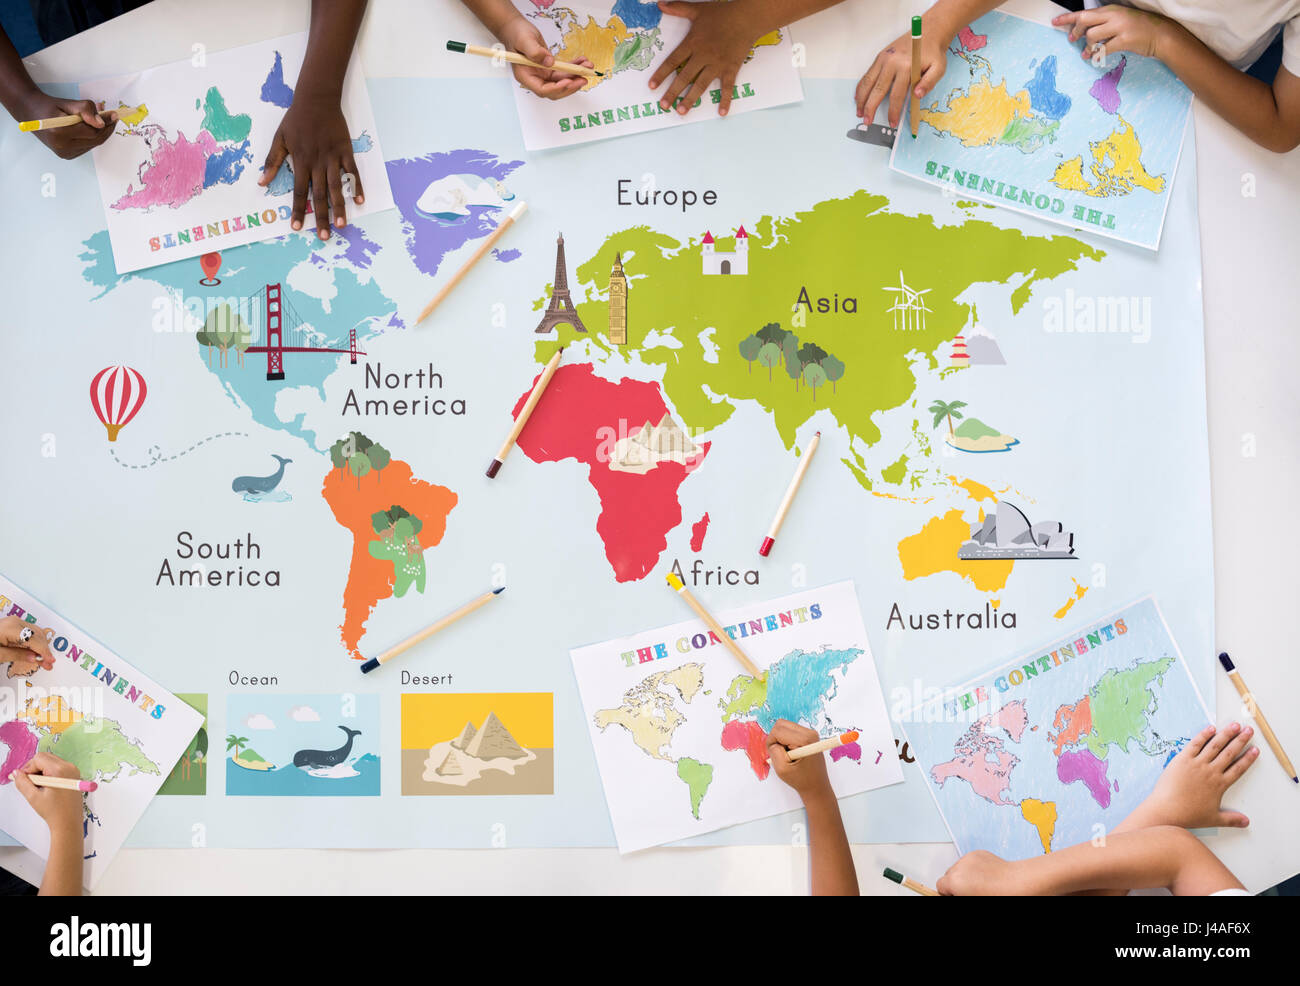 Kids learning world map with continents countries ocean geography kids learning world map with continents countries ocean geography gumiabroncs Image collections